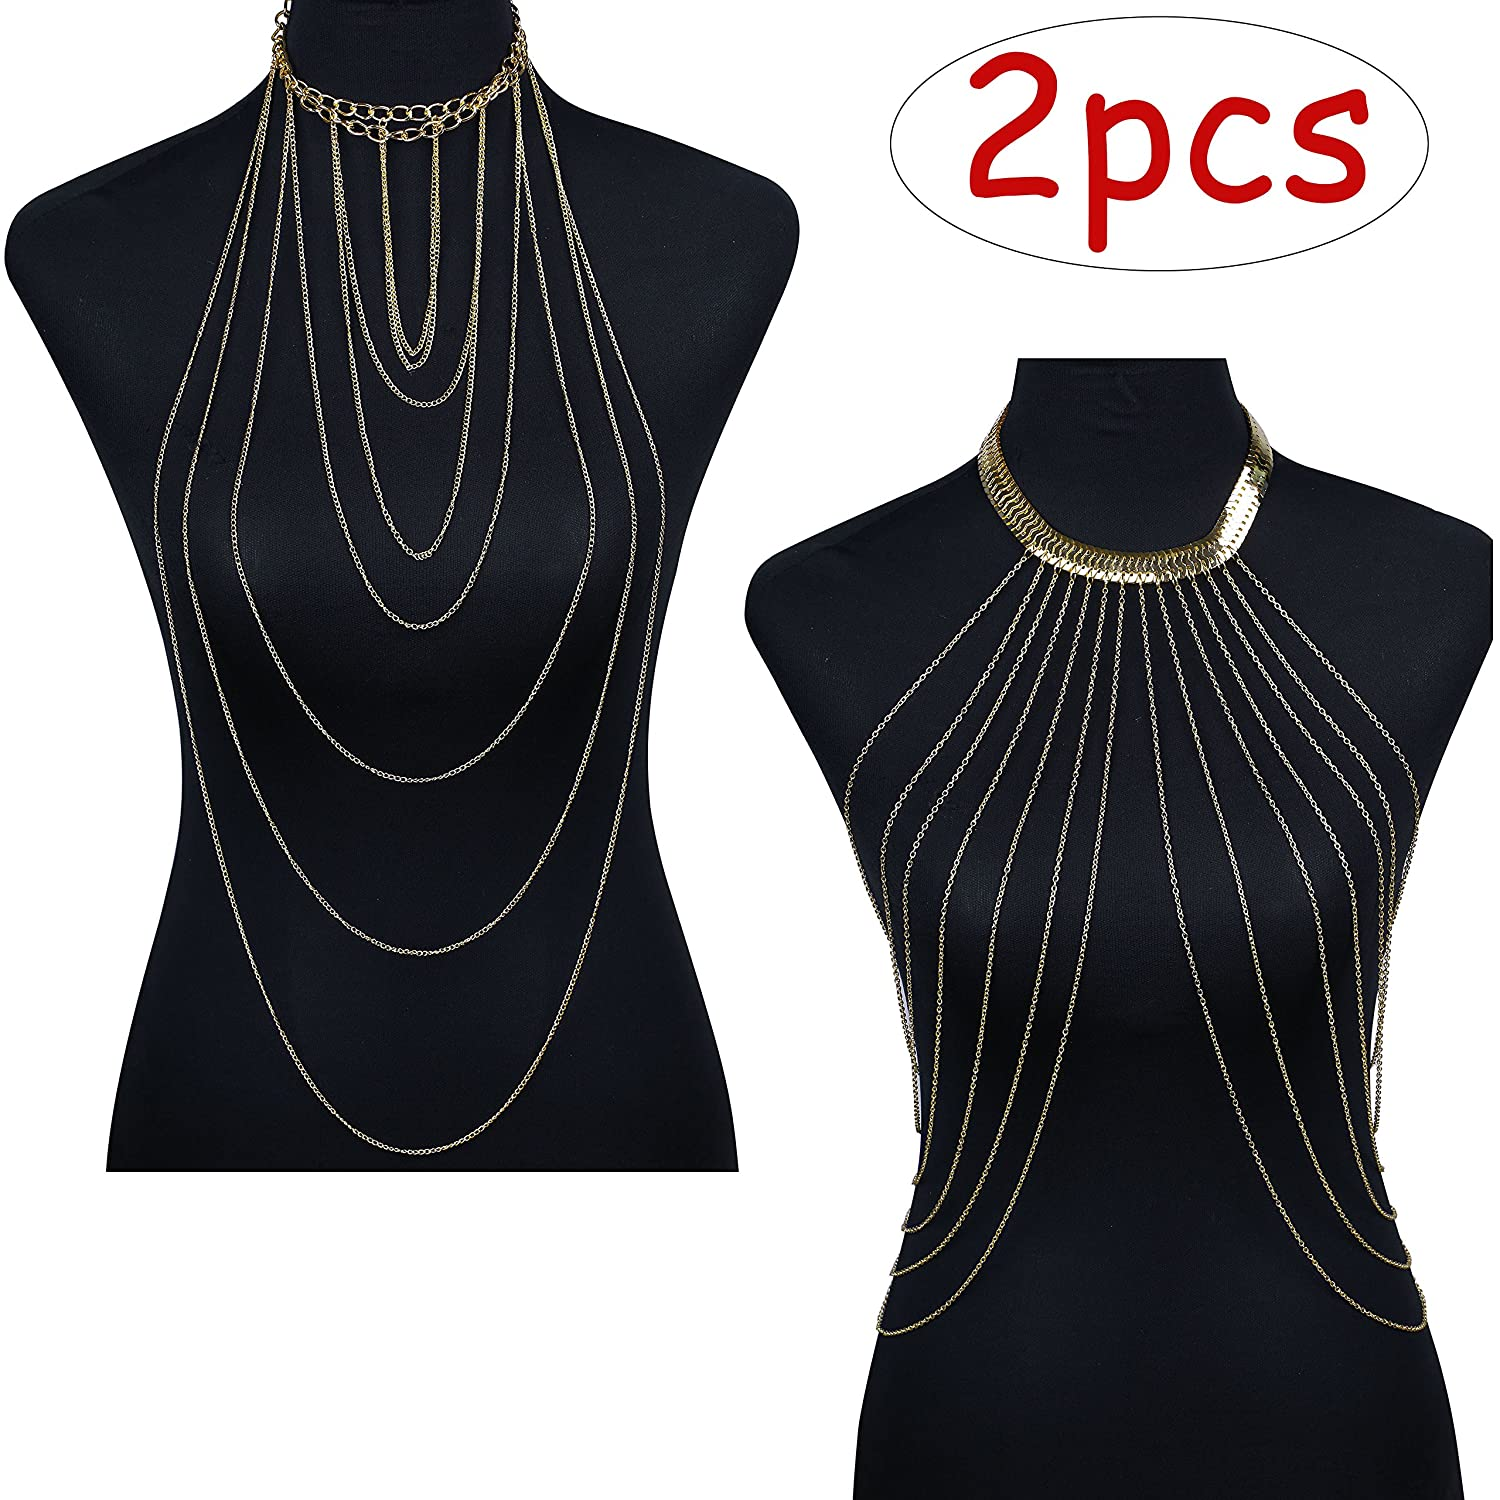 ba12c1c08c AFFORDABLE BODY JEWELRY SET-- One order you can get 2 different styles body  chain